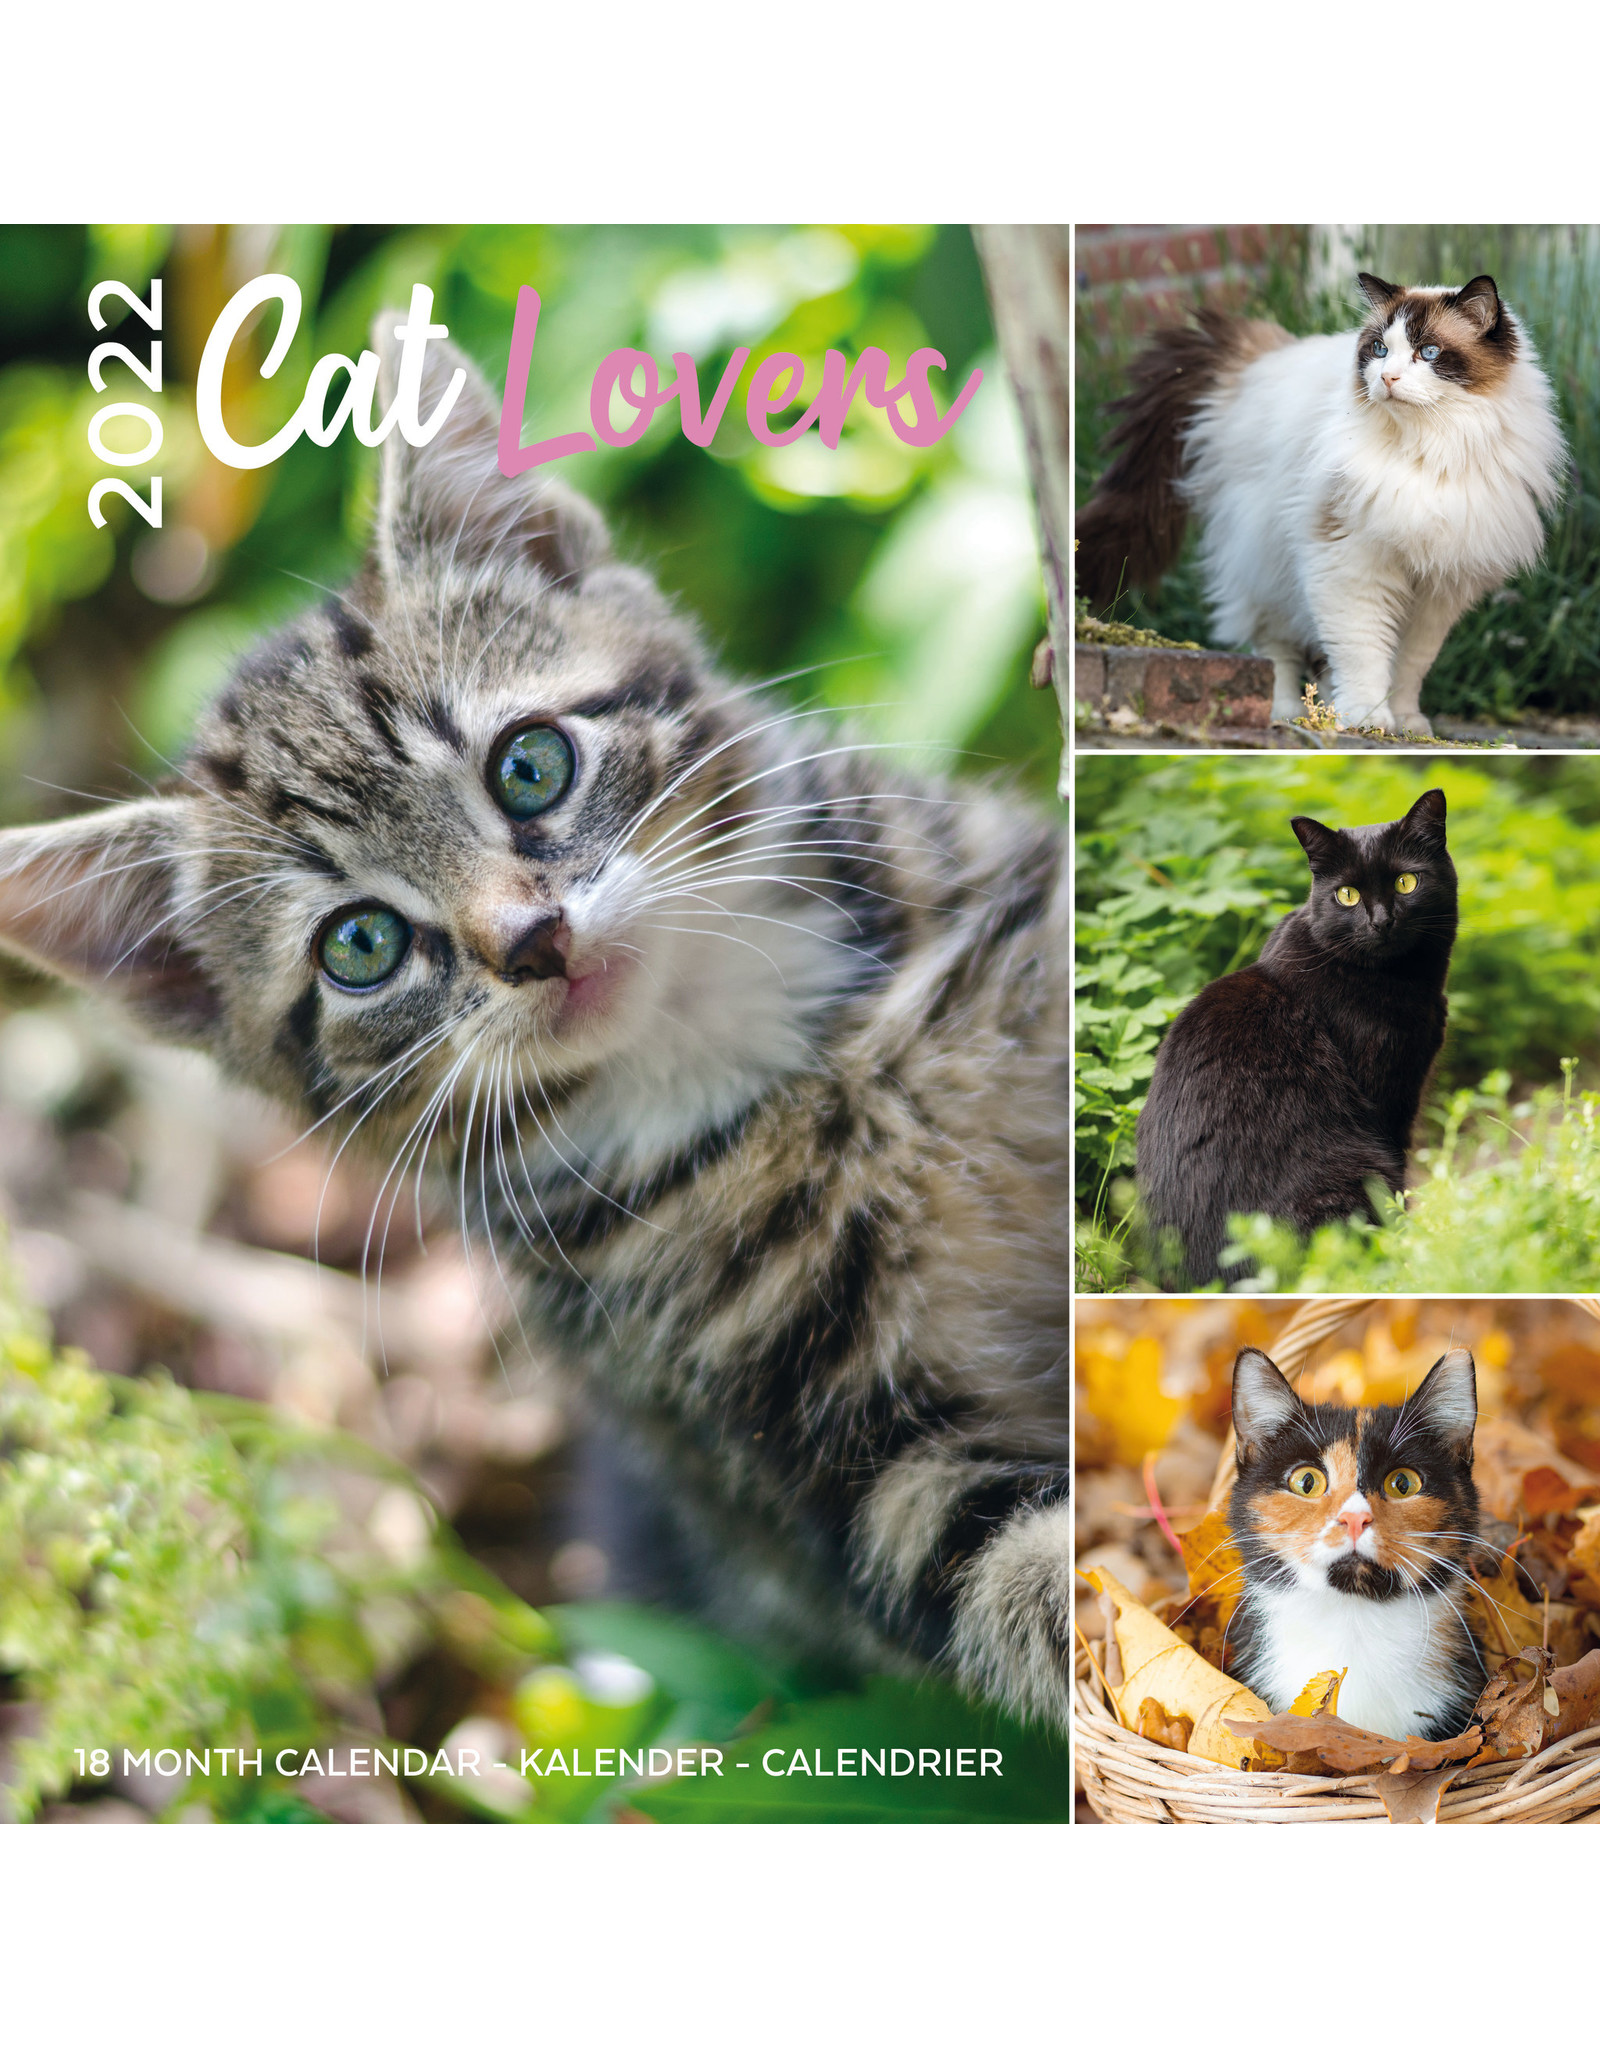 calendar 2022 with for cat lovers